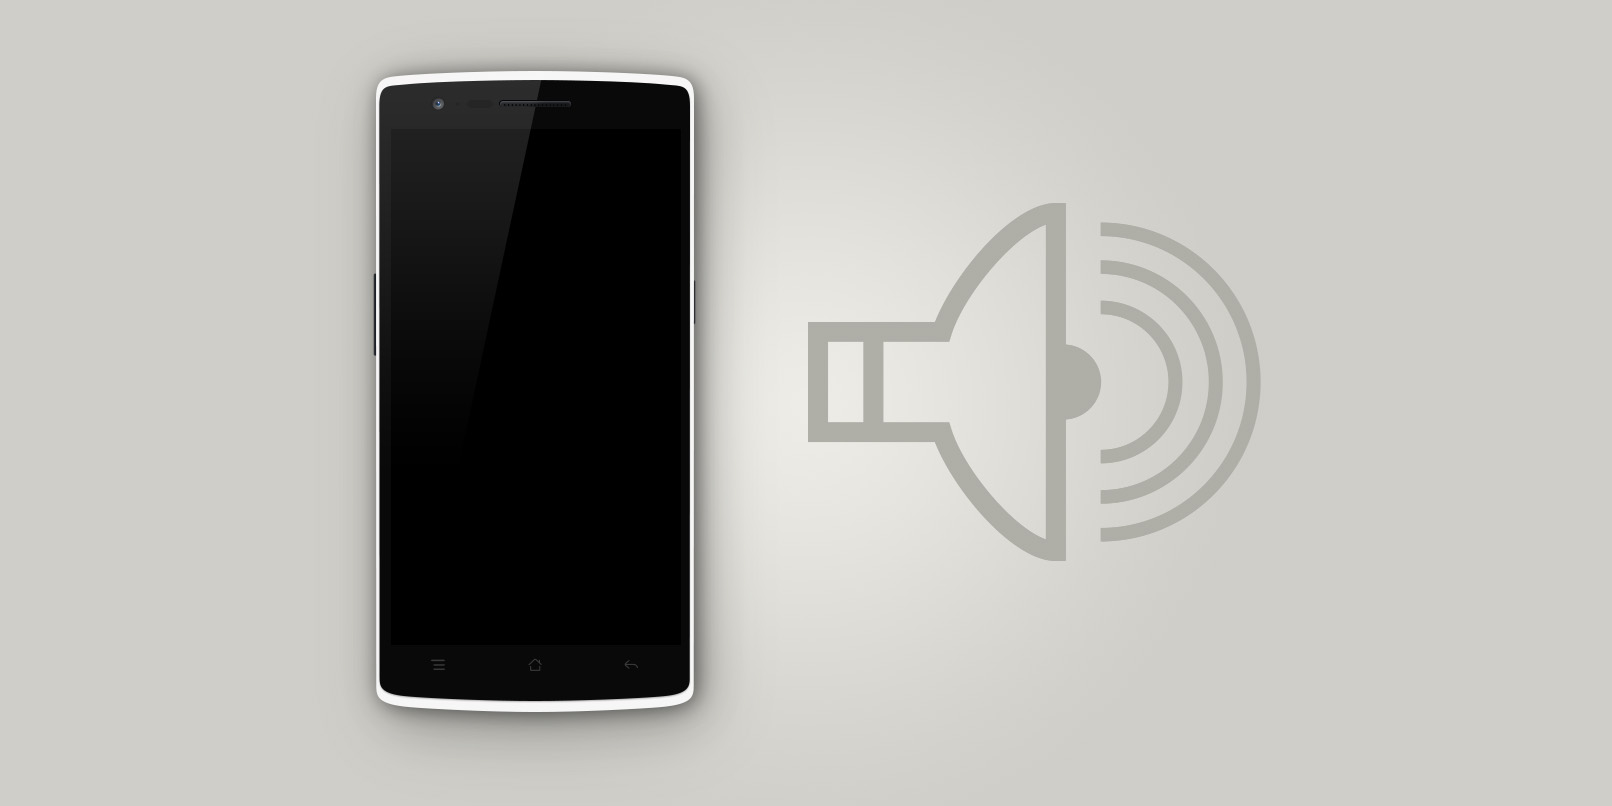 Listen to YouTube audio on Android with your screen turned off